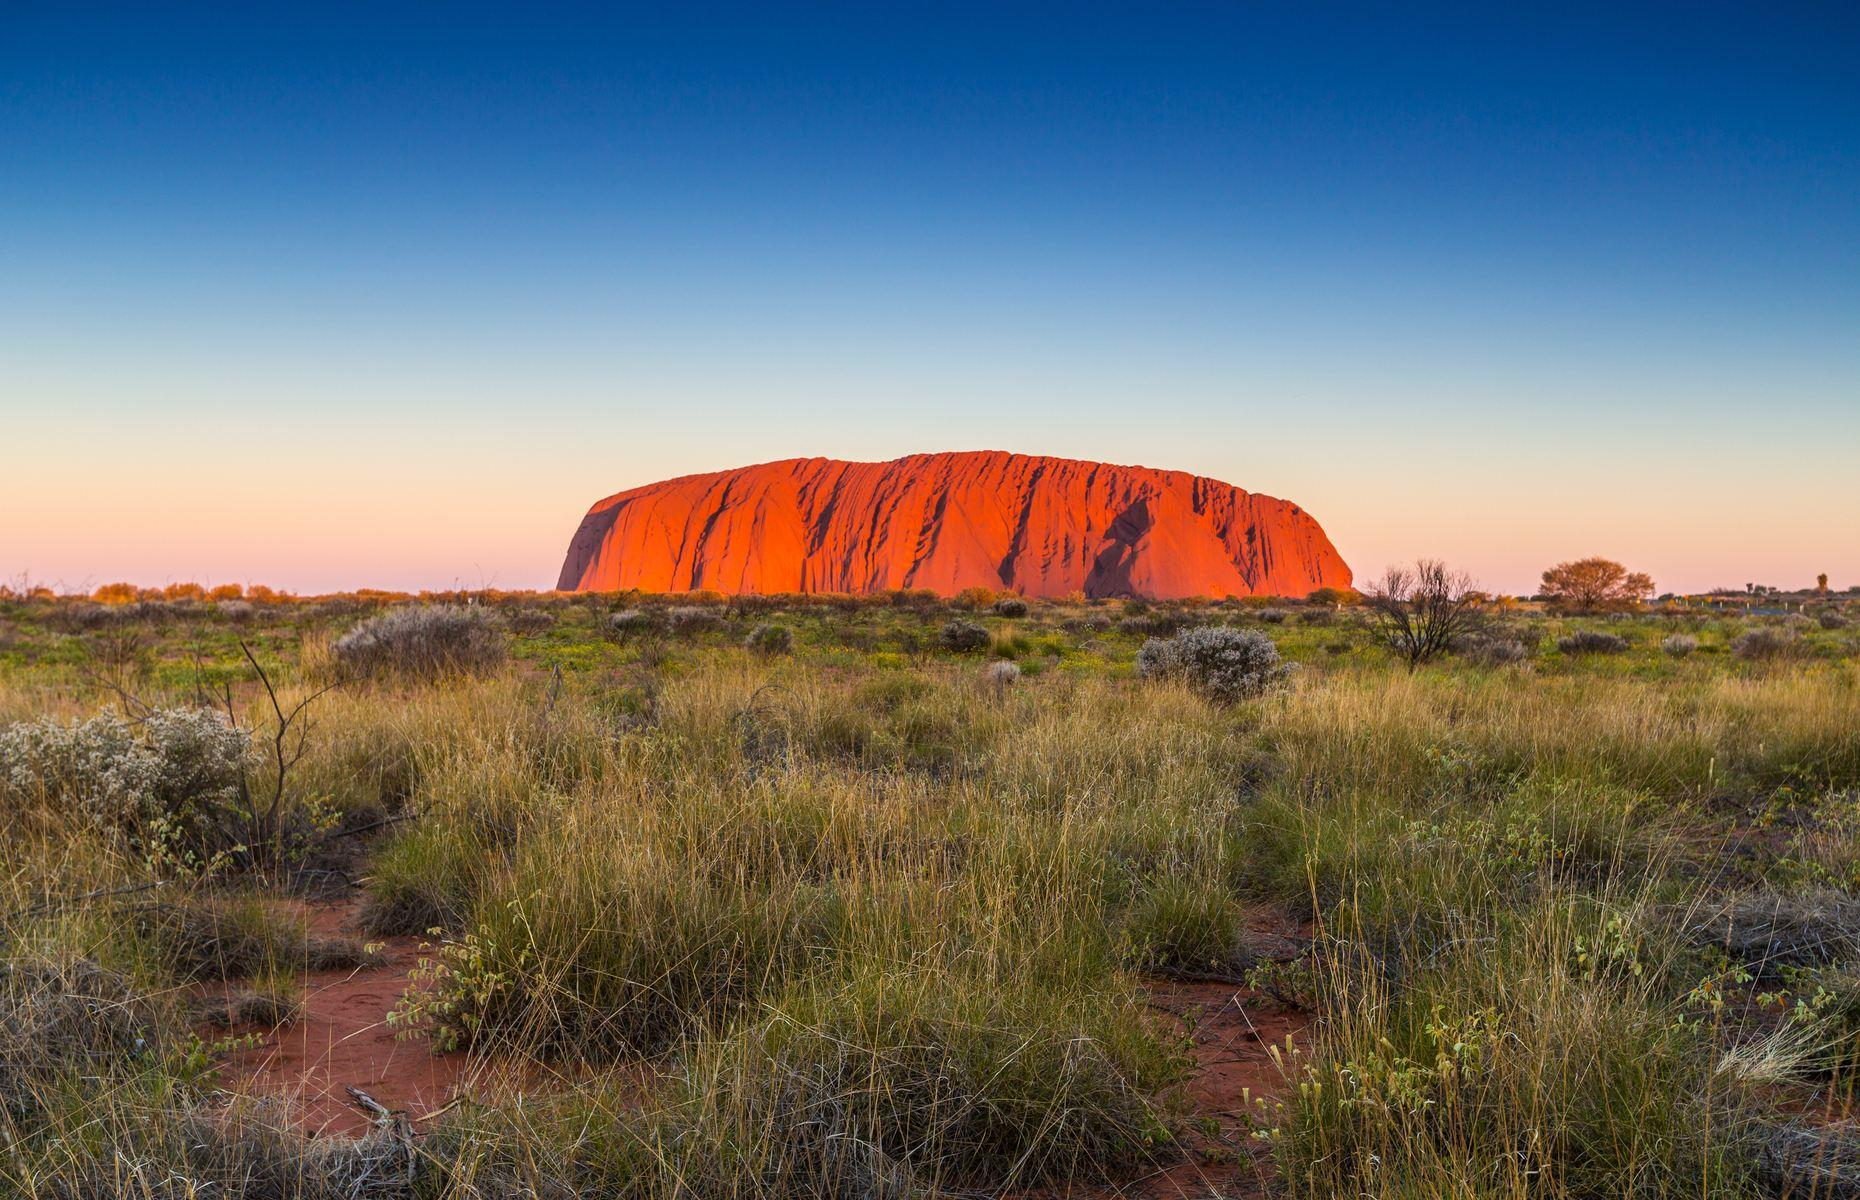 Slide 16 of 31: Earning over 395,000 posts, Uluru-Kata Tjuṯa National Park is home to one of Australia's most iconic landmarks and lies in the middle of Central Australia's outback. Formerly known as Ayers Rock, Uluru is a mighty 1,142-foot-high (348m) red sandstone monolith roughly half a billion years old. The eye-catching rock is a sacred site for the guardians of the land known as the Aṉangu people and is regarded as one of the world's most amazing natural wonders. Discover more of Australia's stunning natural wonders here.